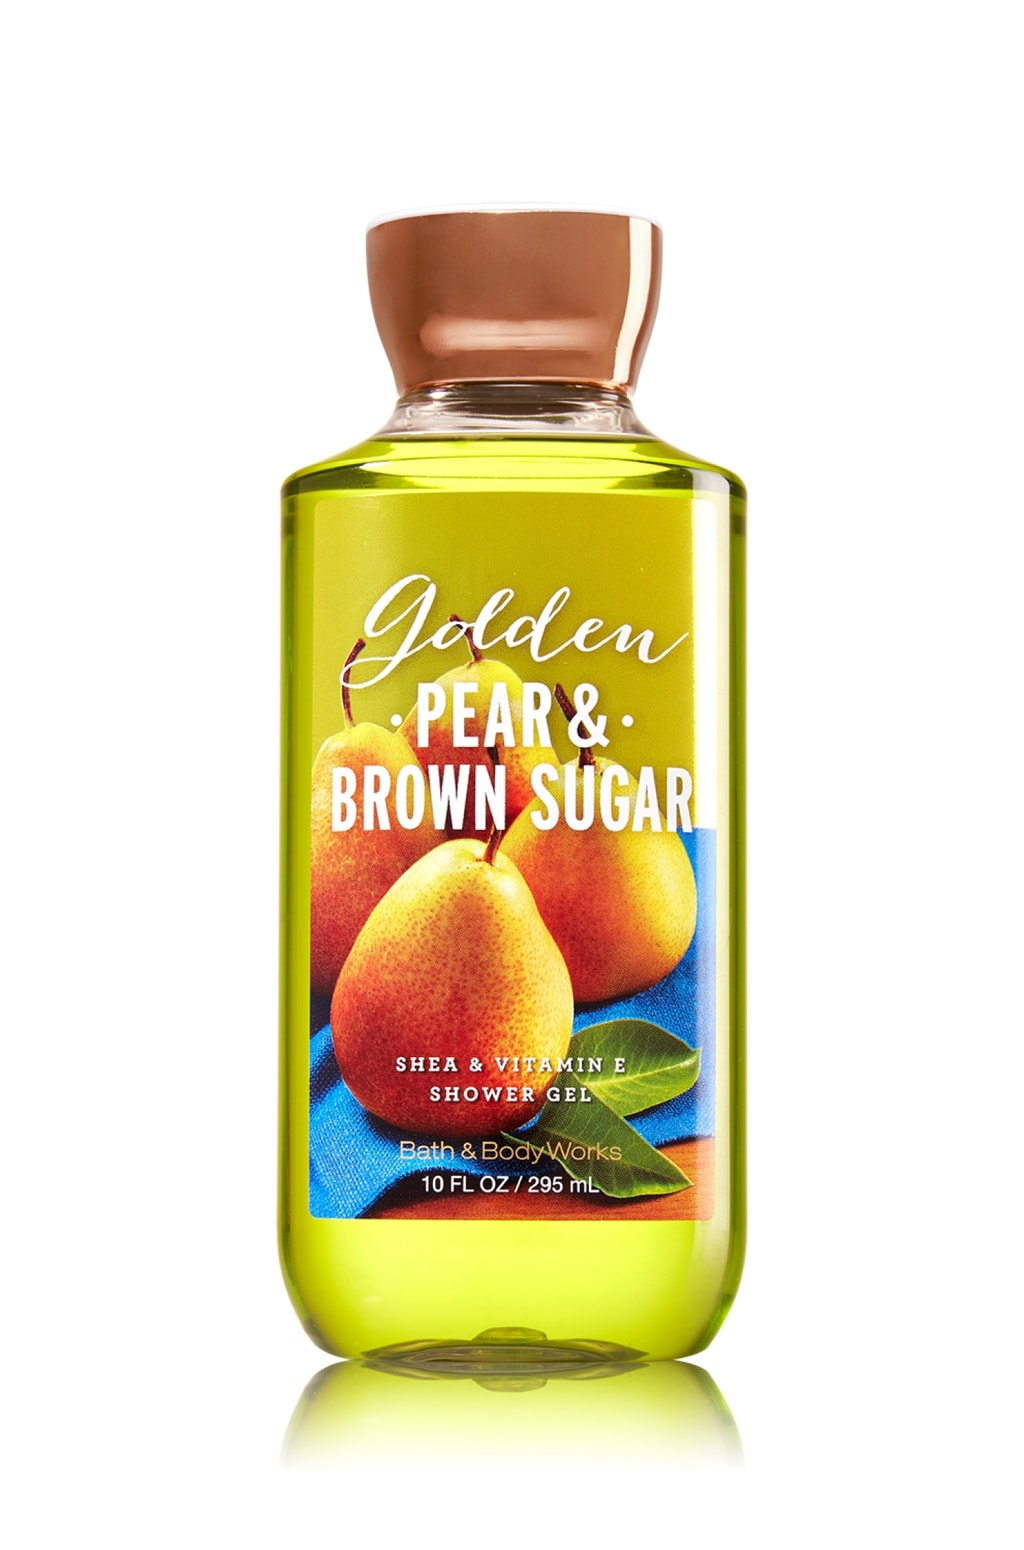 Golden pear and brown sugar body wash